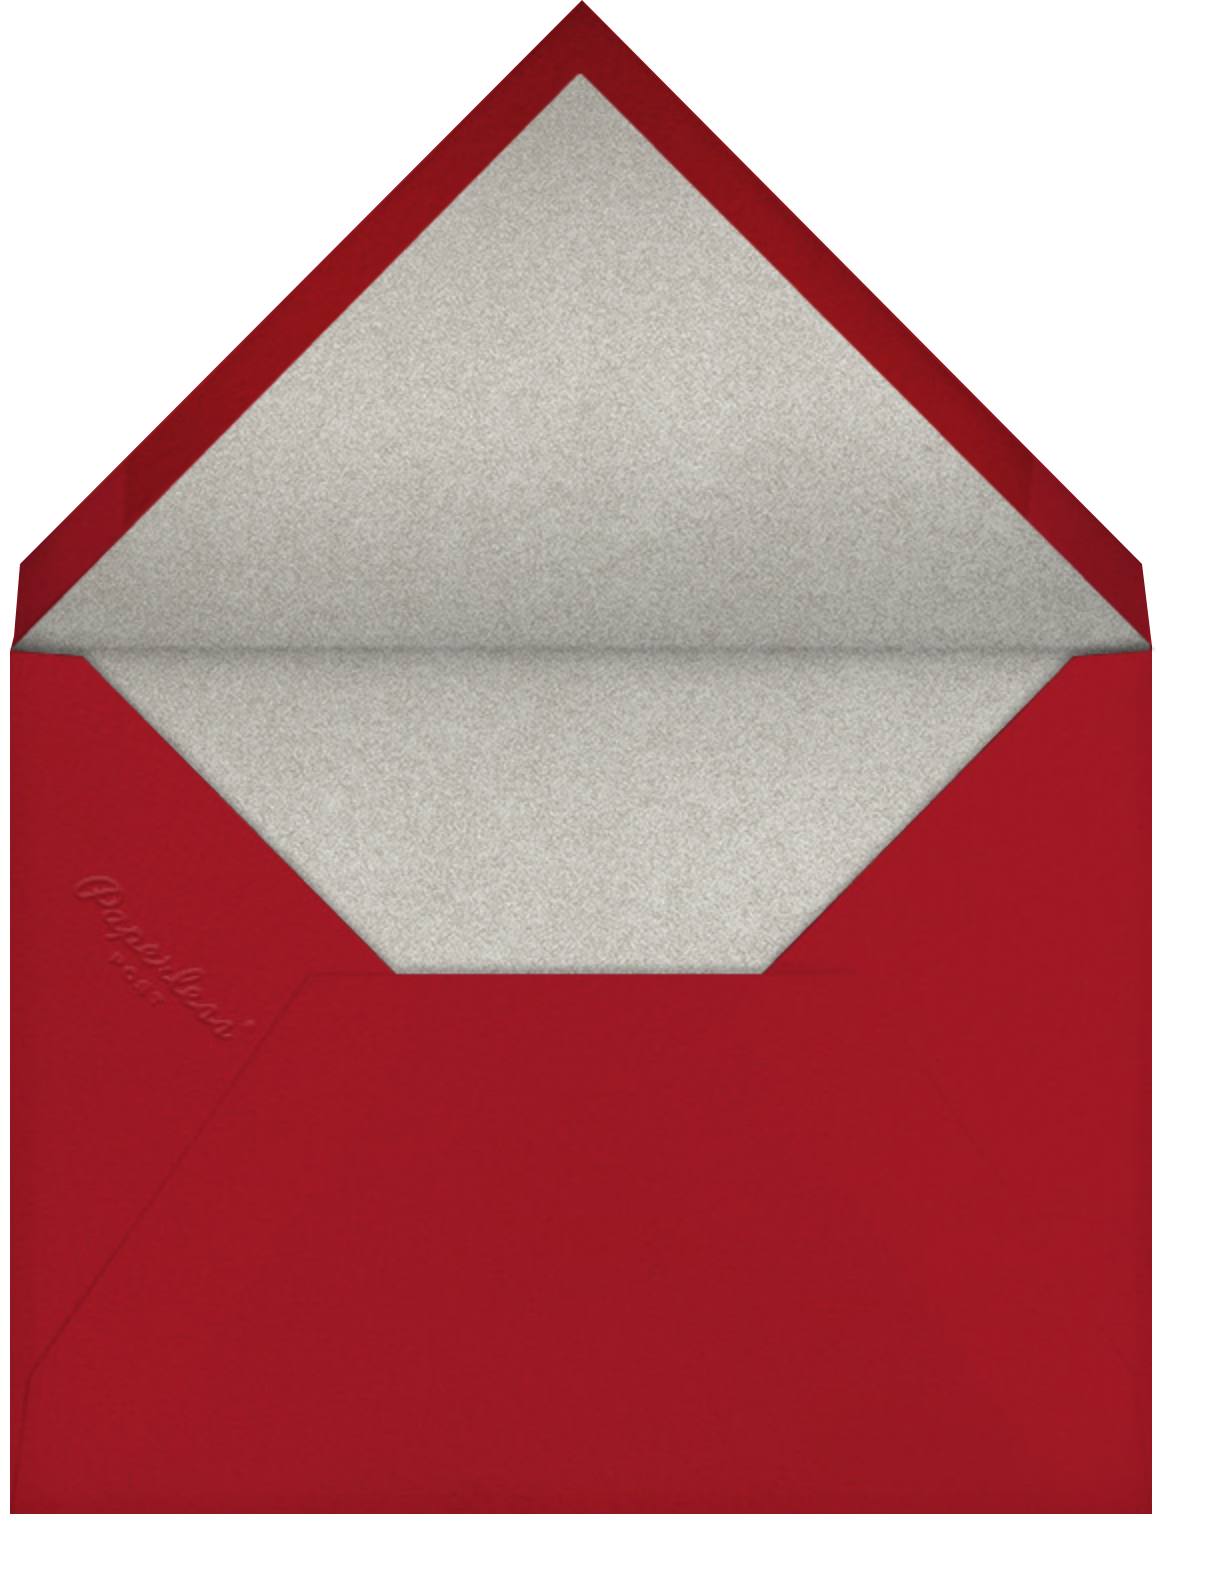 You Make My Heart Race - Paperless Post - Valentine's Day - envelope back